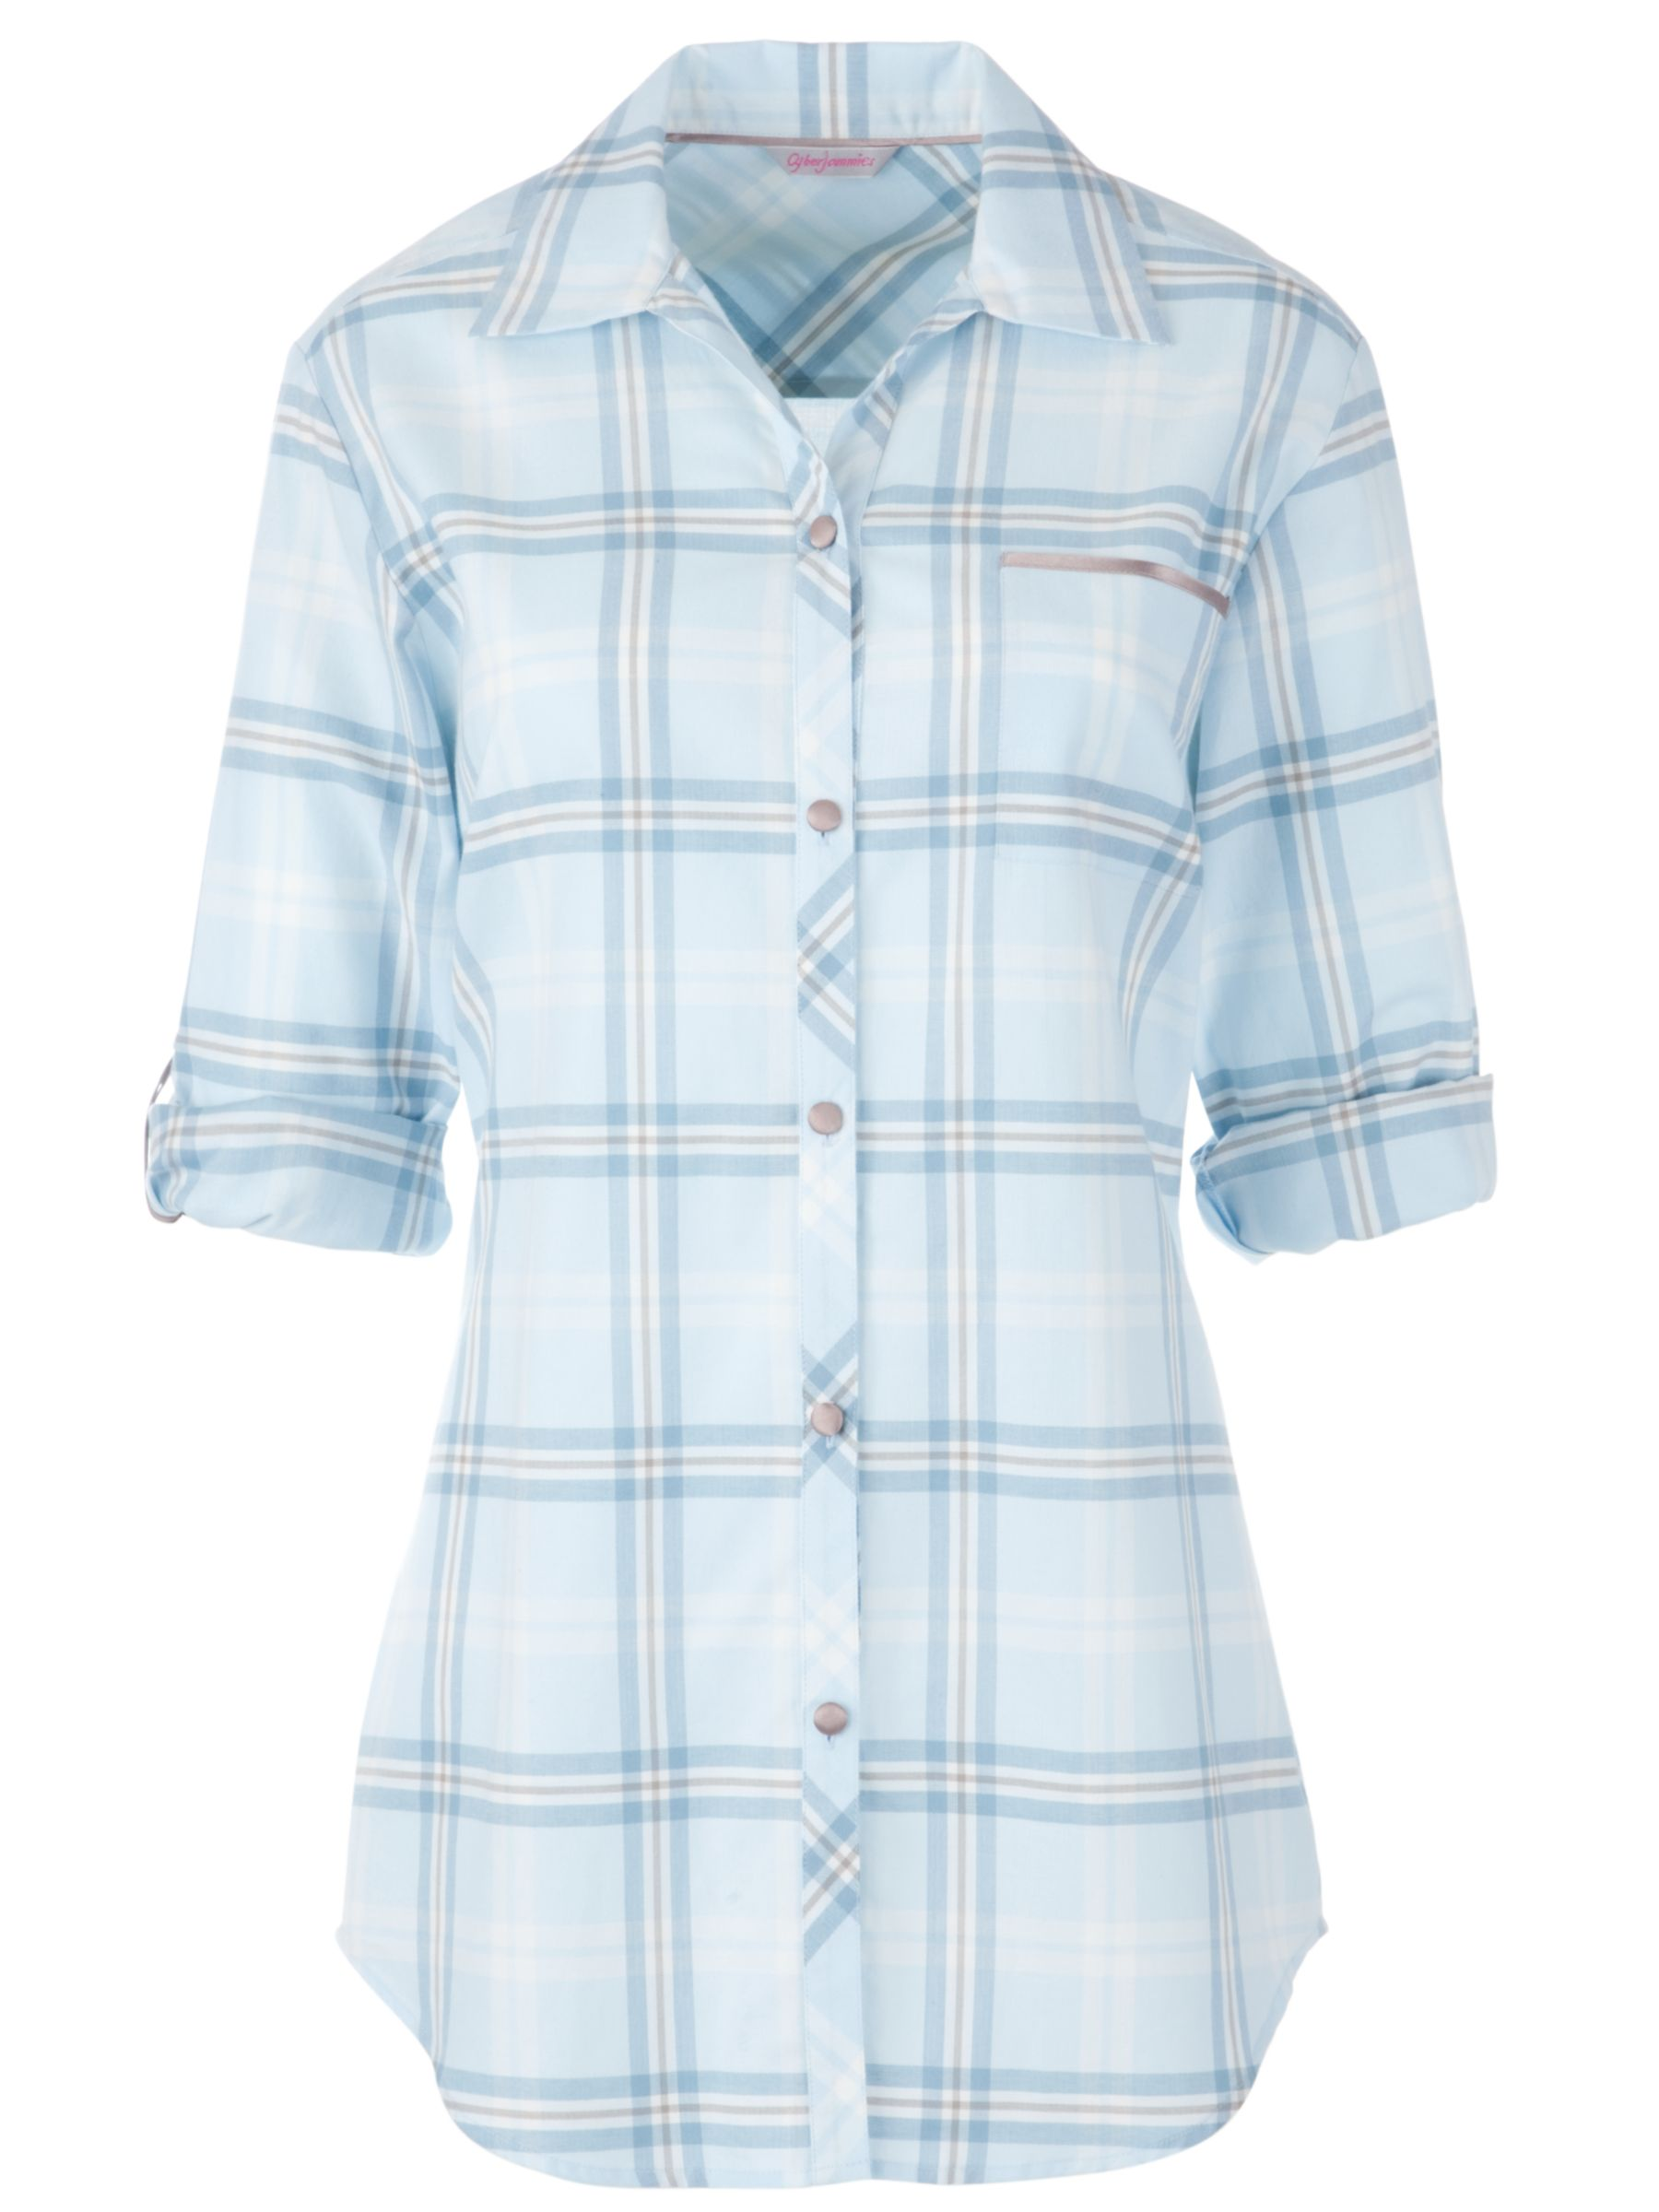 Cyberjammies Angel Mist Check Nightshirt, Blue